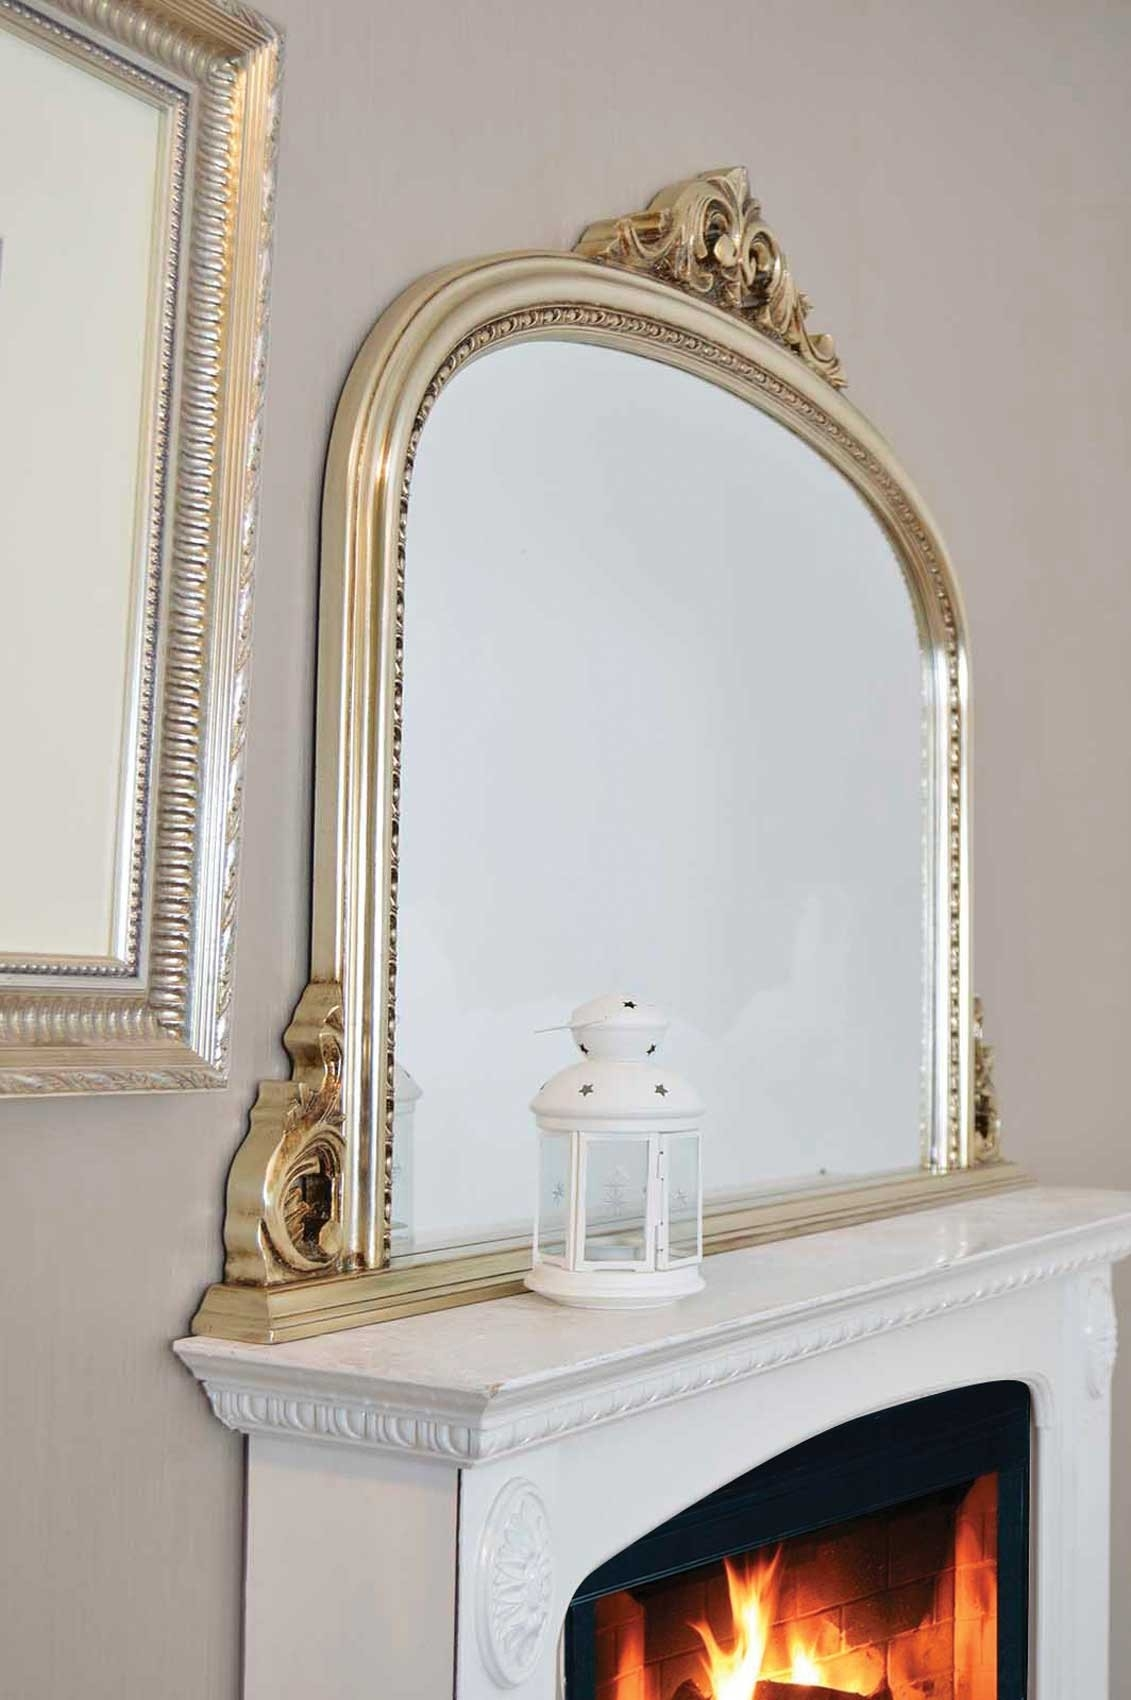 Large Champagne Silver Antique Over Mantle Wall Mirror 4ft2 X 3ft Within Large Mantel Mirrors (Image 10 of 15)